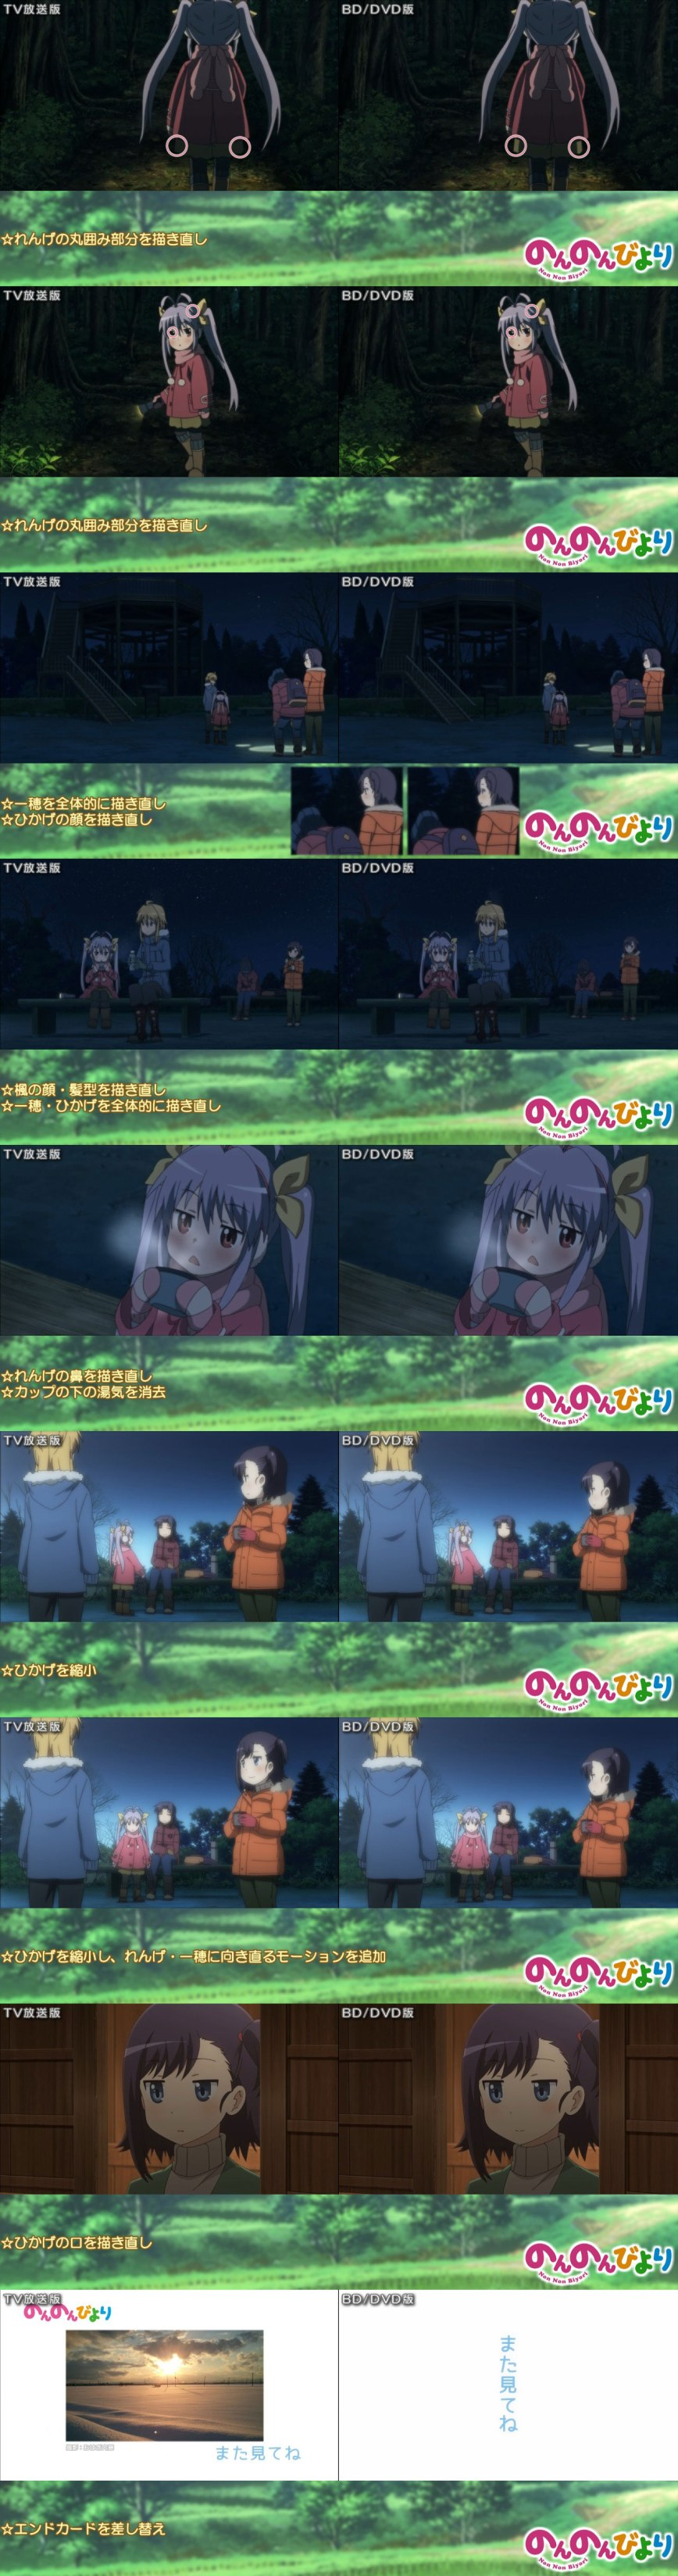 Non Non Biyori TV Blu Ray Comparison 11